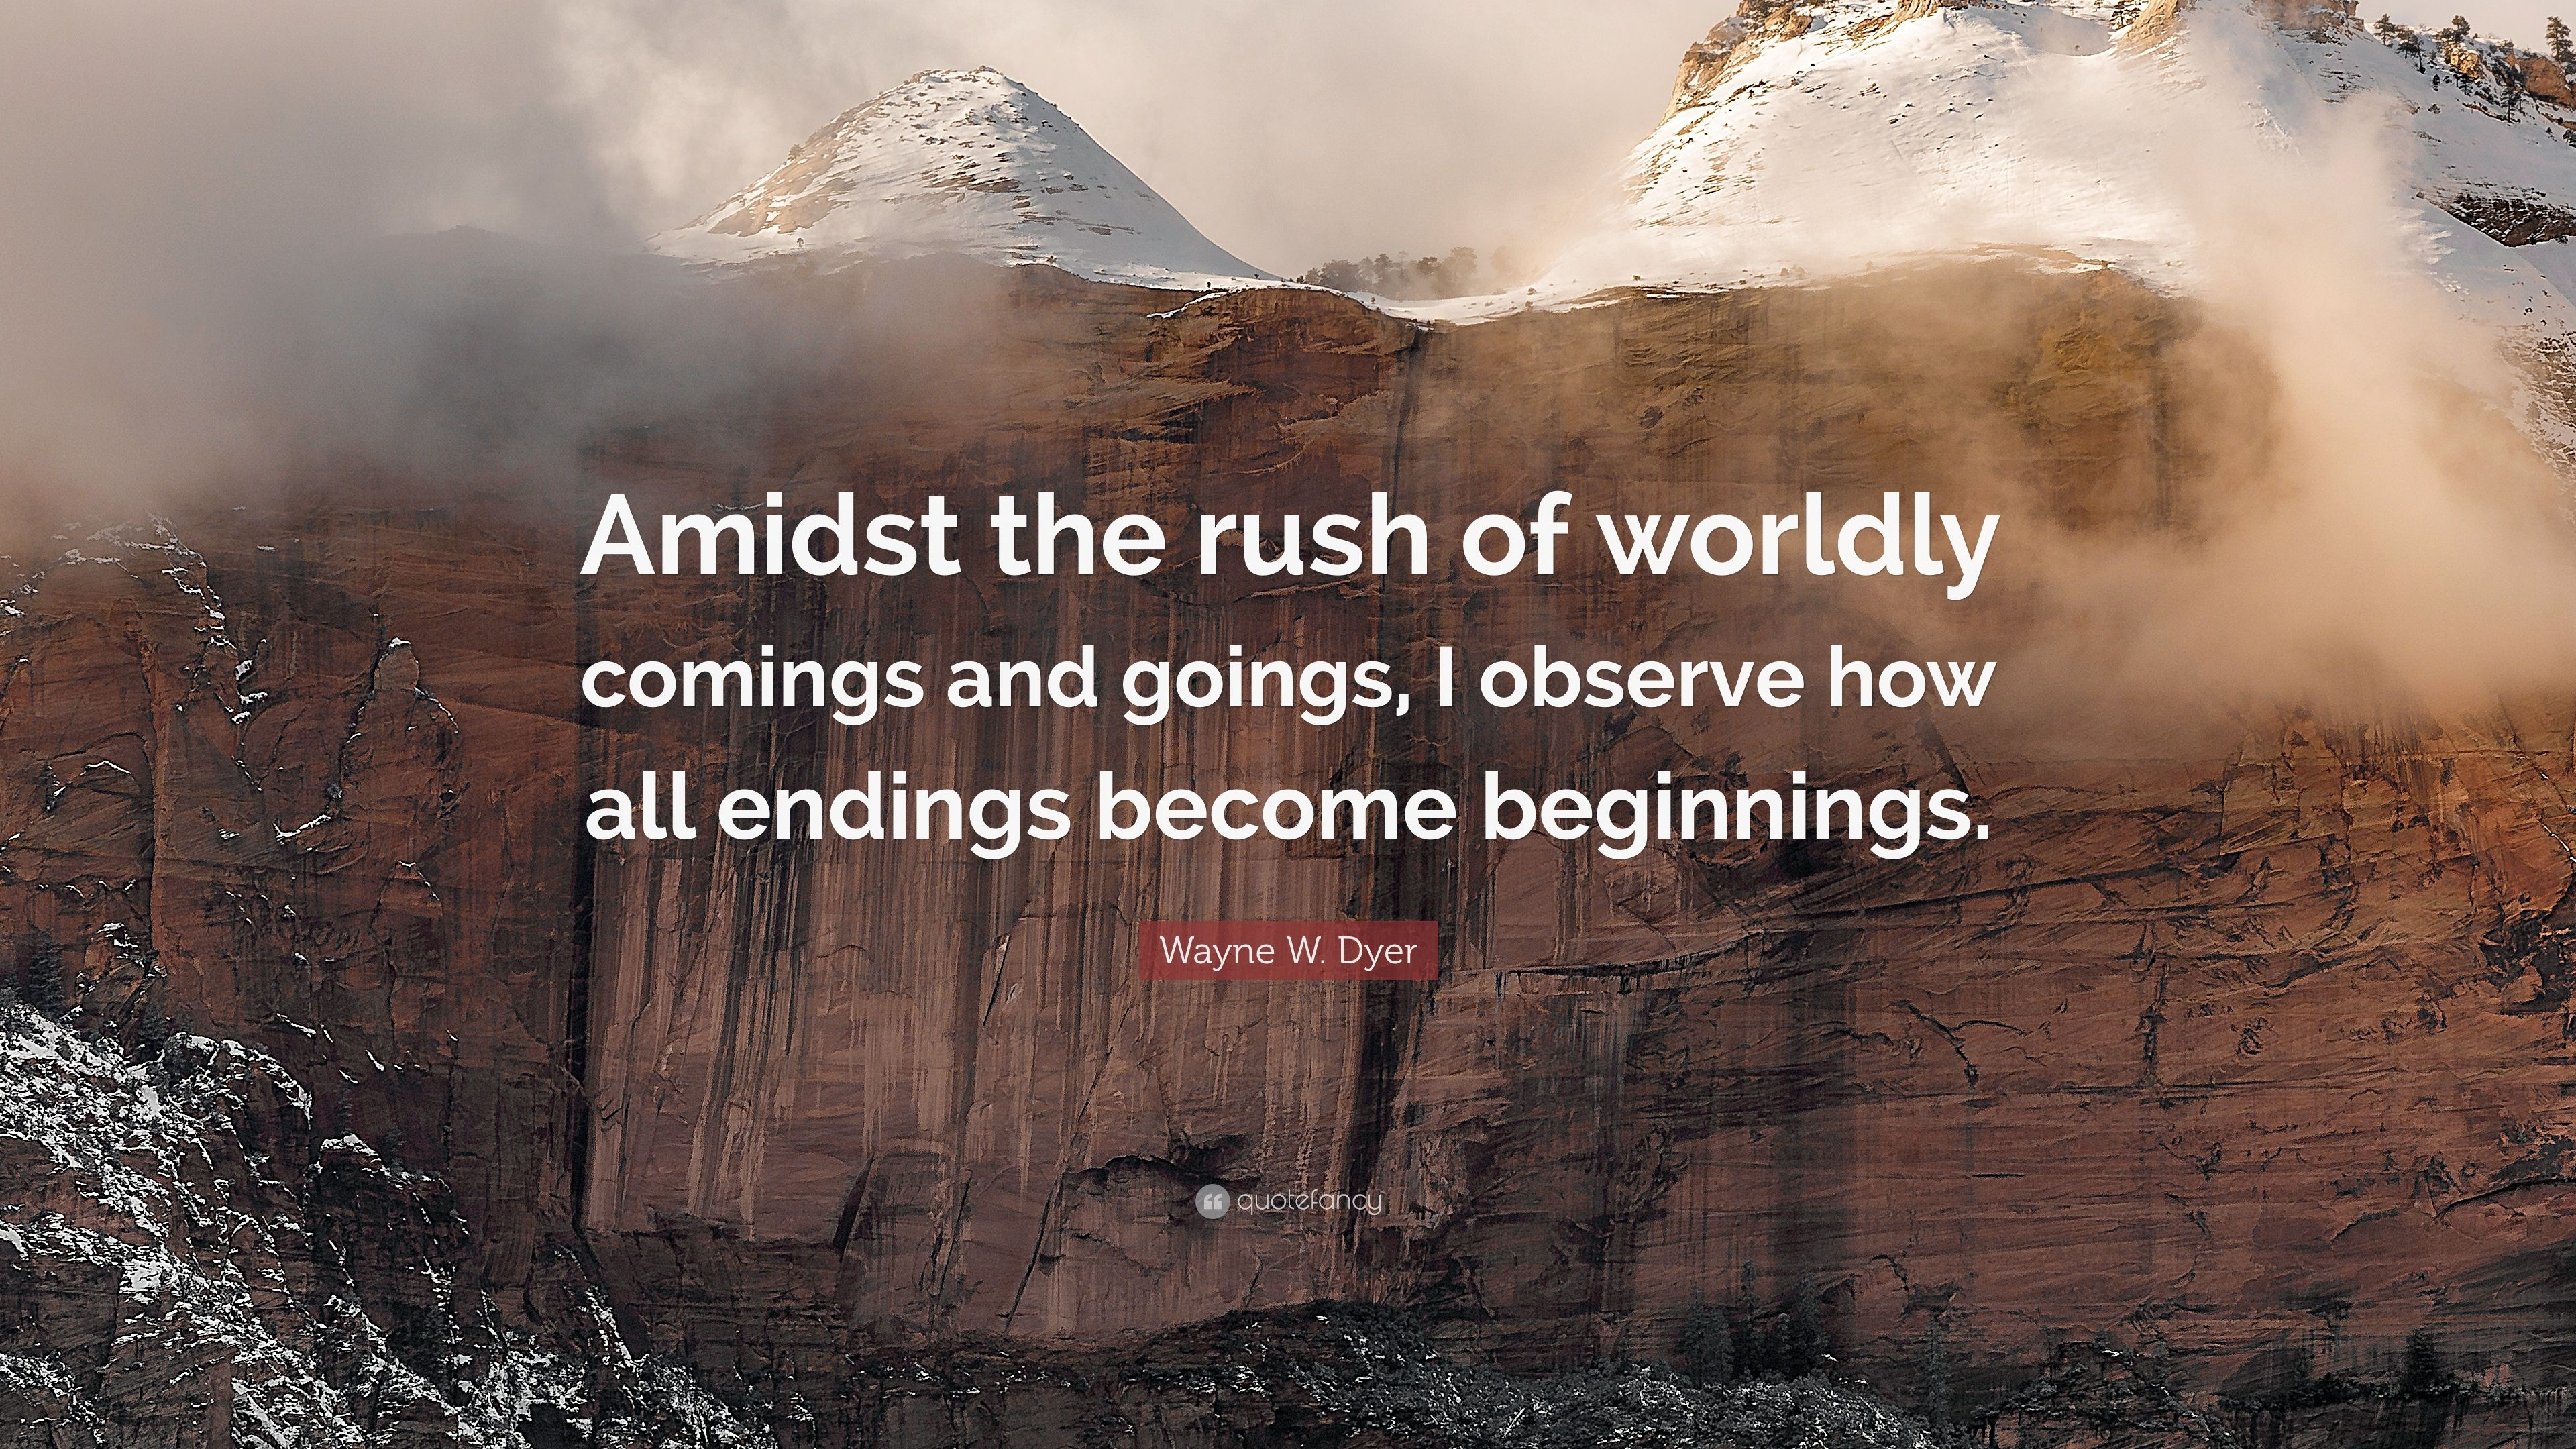 Good Wayne W. Dyer Quote: U201cAmidst The Rush Of Worldly Comings And Goings,